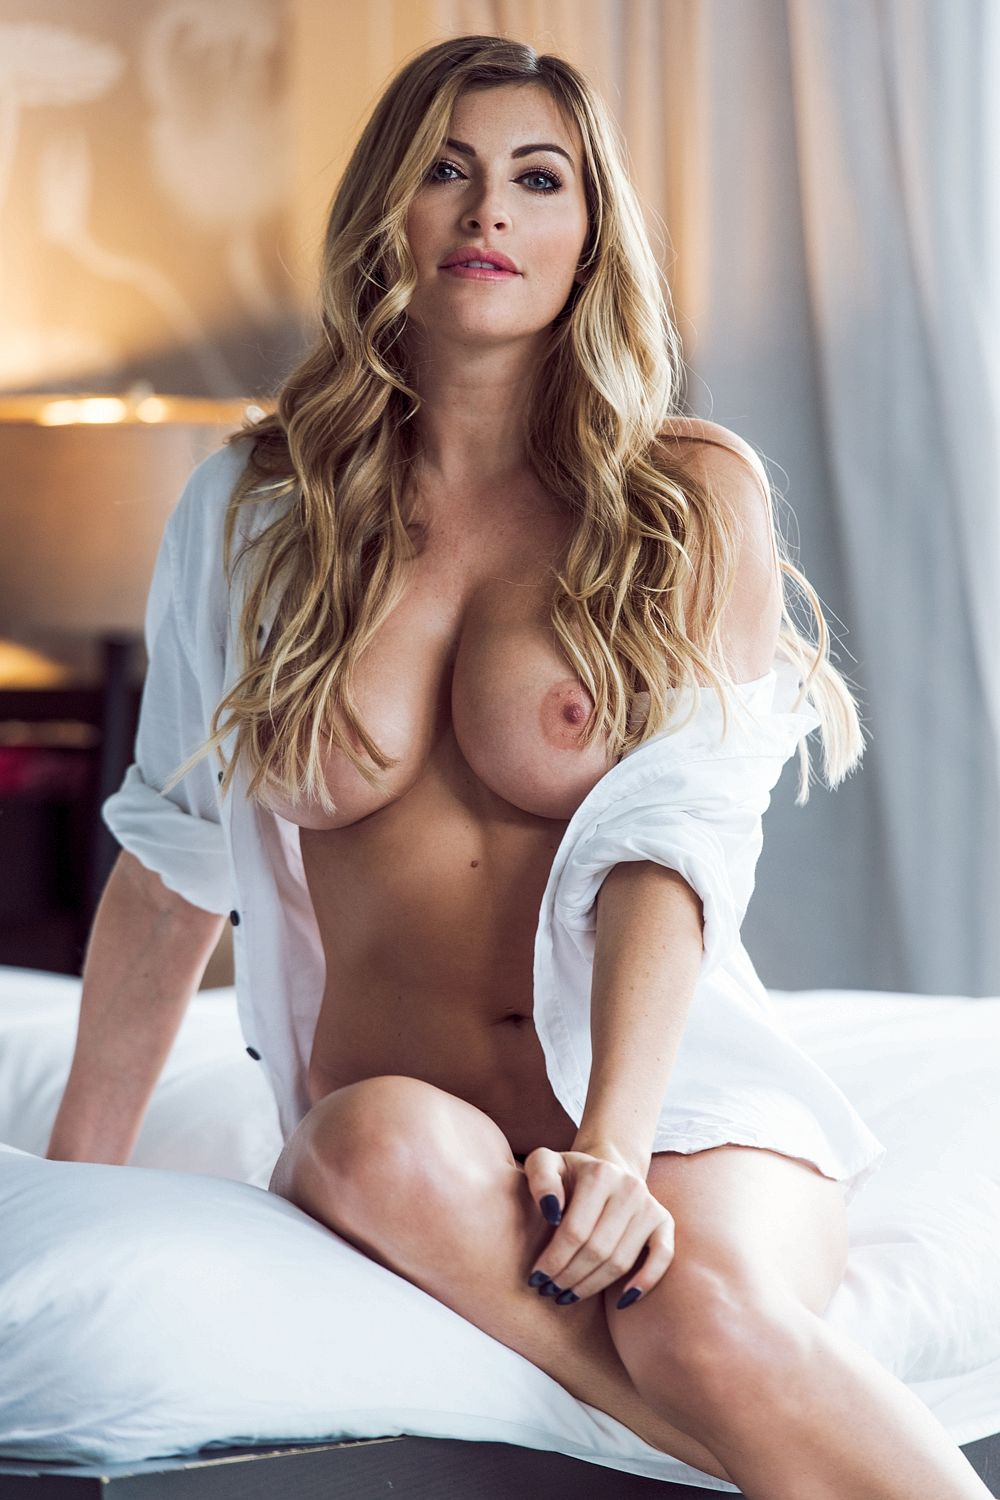 Sam-Cooke-Topless-2-1